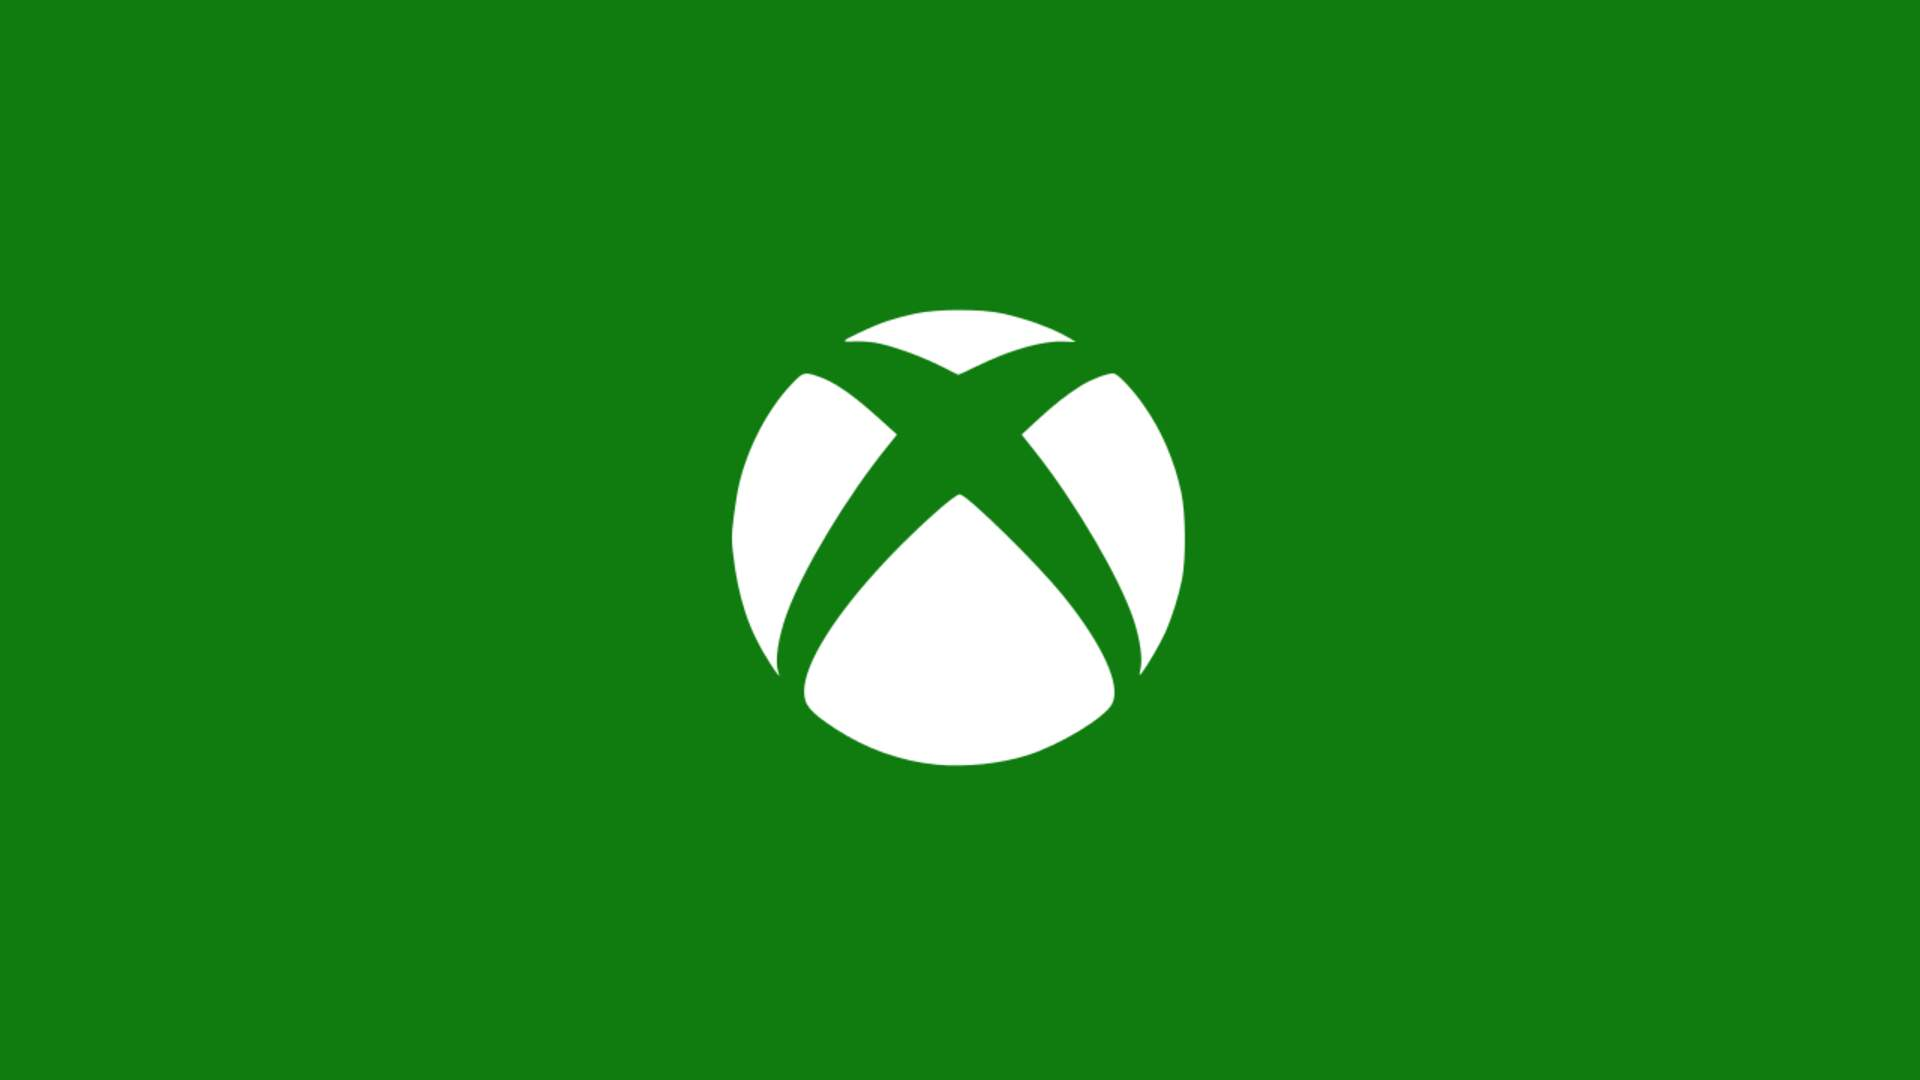 Xbox is Making Less Money Than This Time Last Year, But It's Complicated